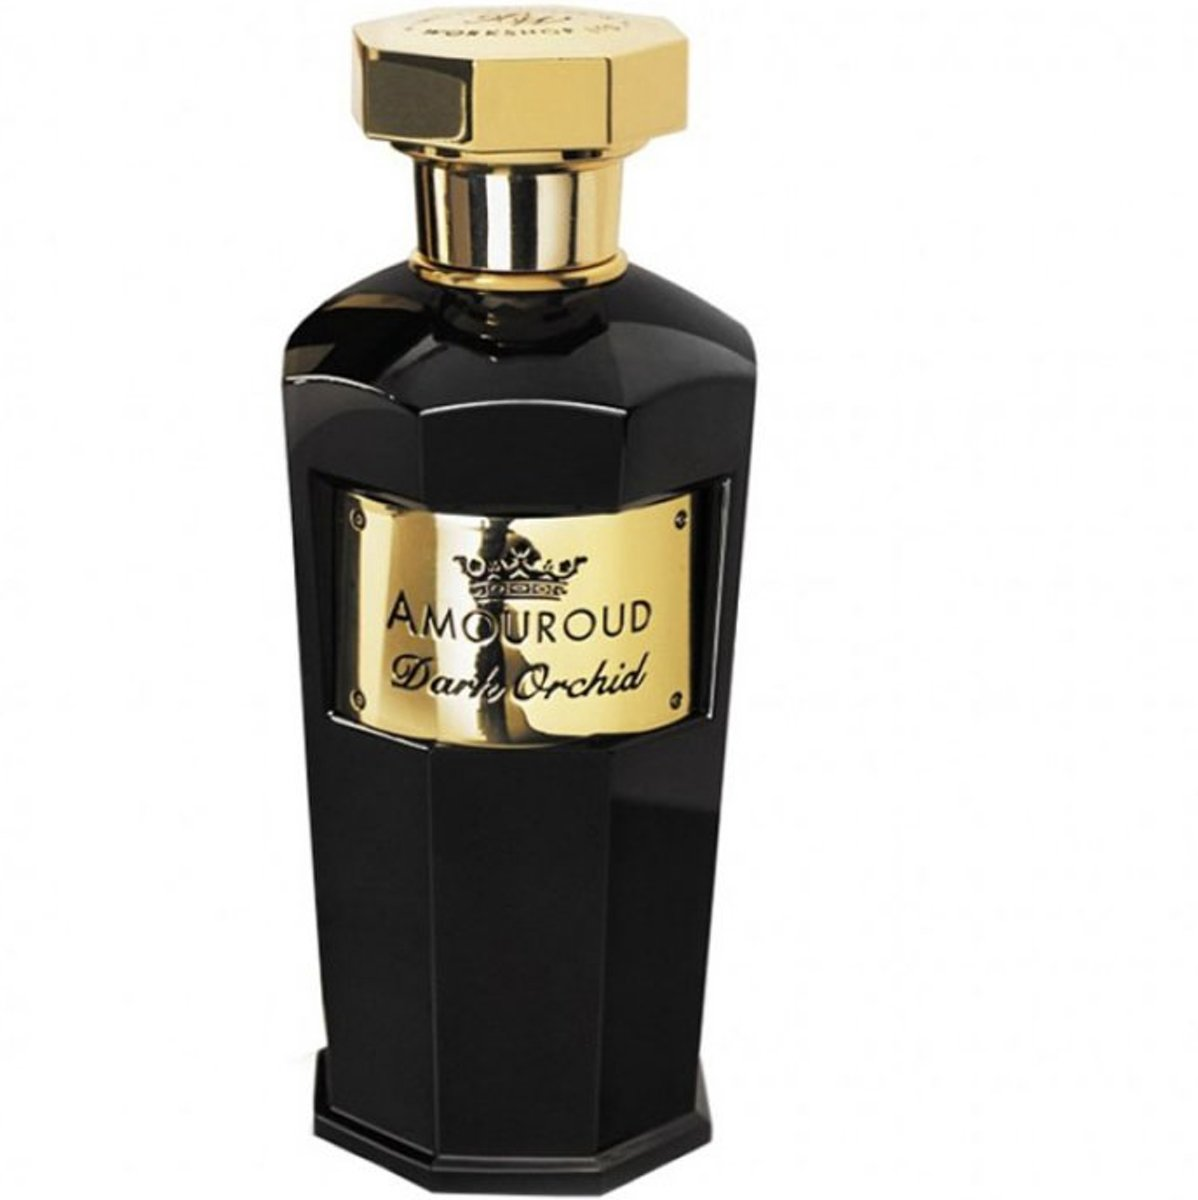 Amouroud Dark Orchid Eau de Parfum Spray 100 ml